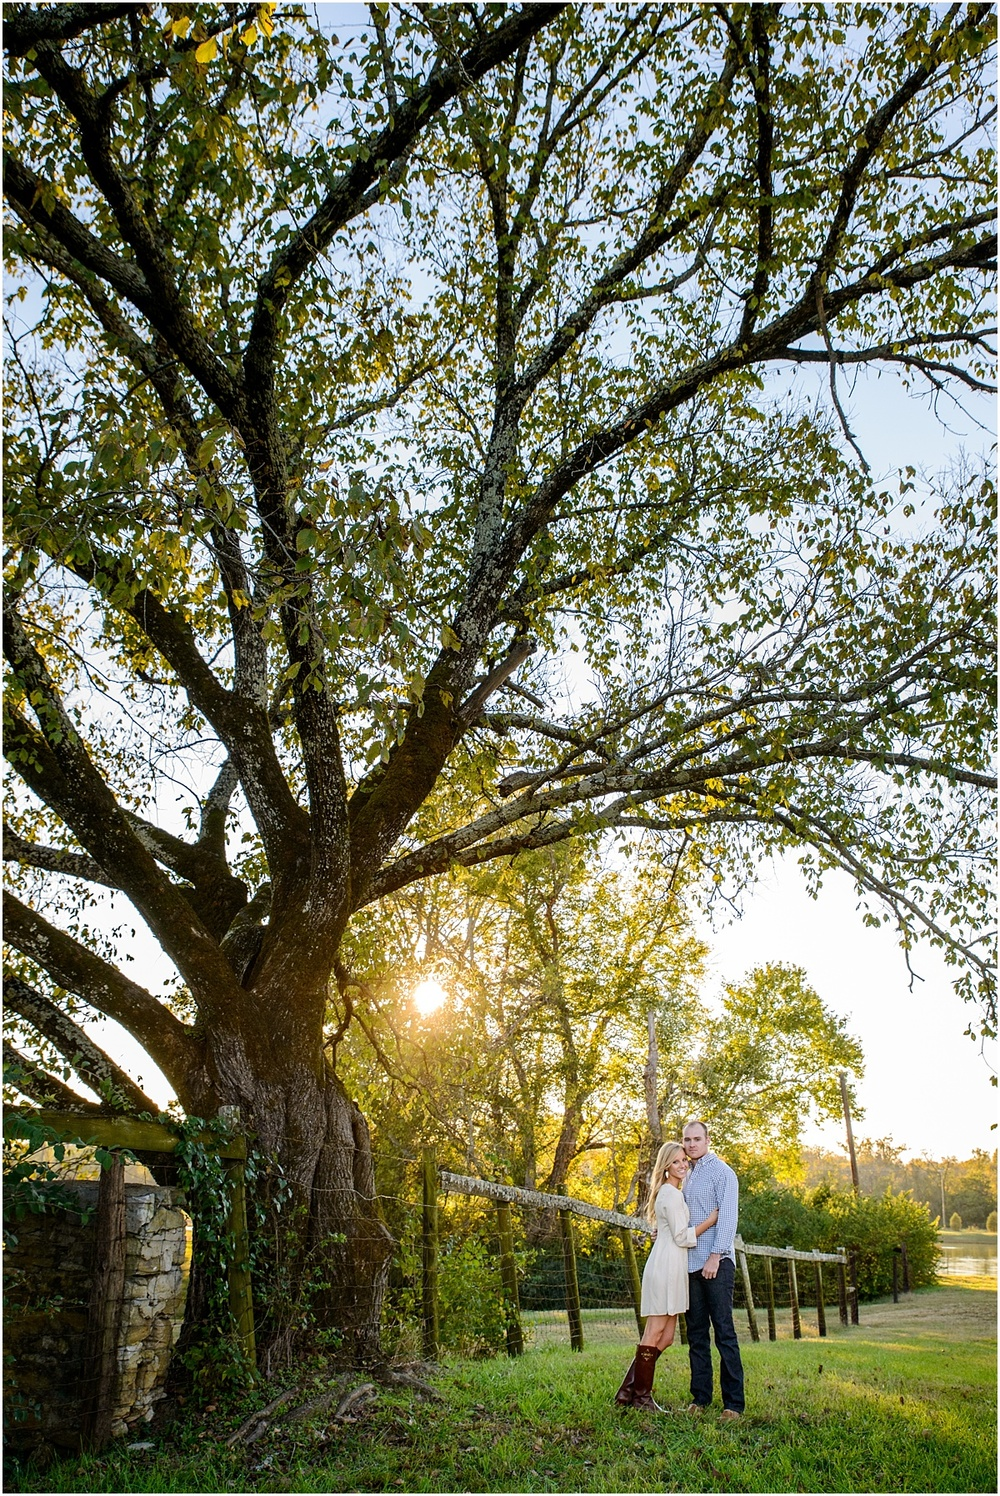 Greg Smit Photography Nashville wedding photographer Harlinsdale Farm Engagement Franklin TN_0016